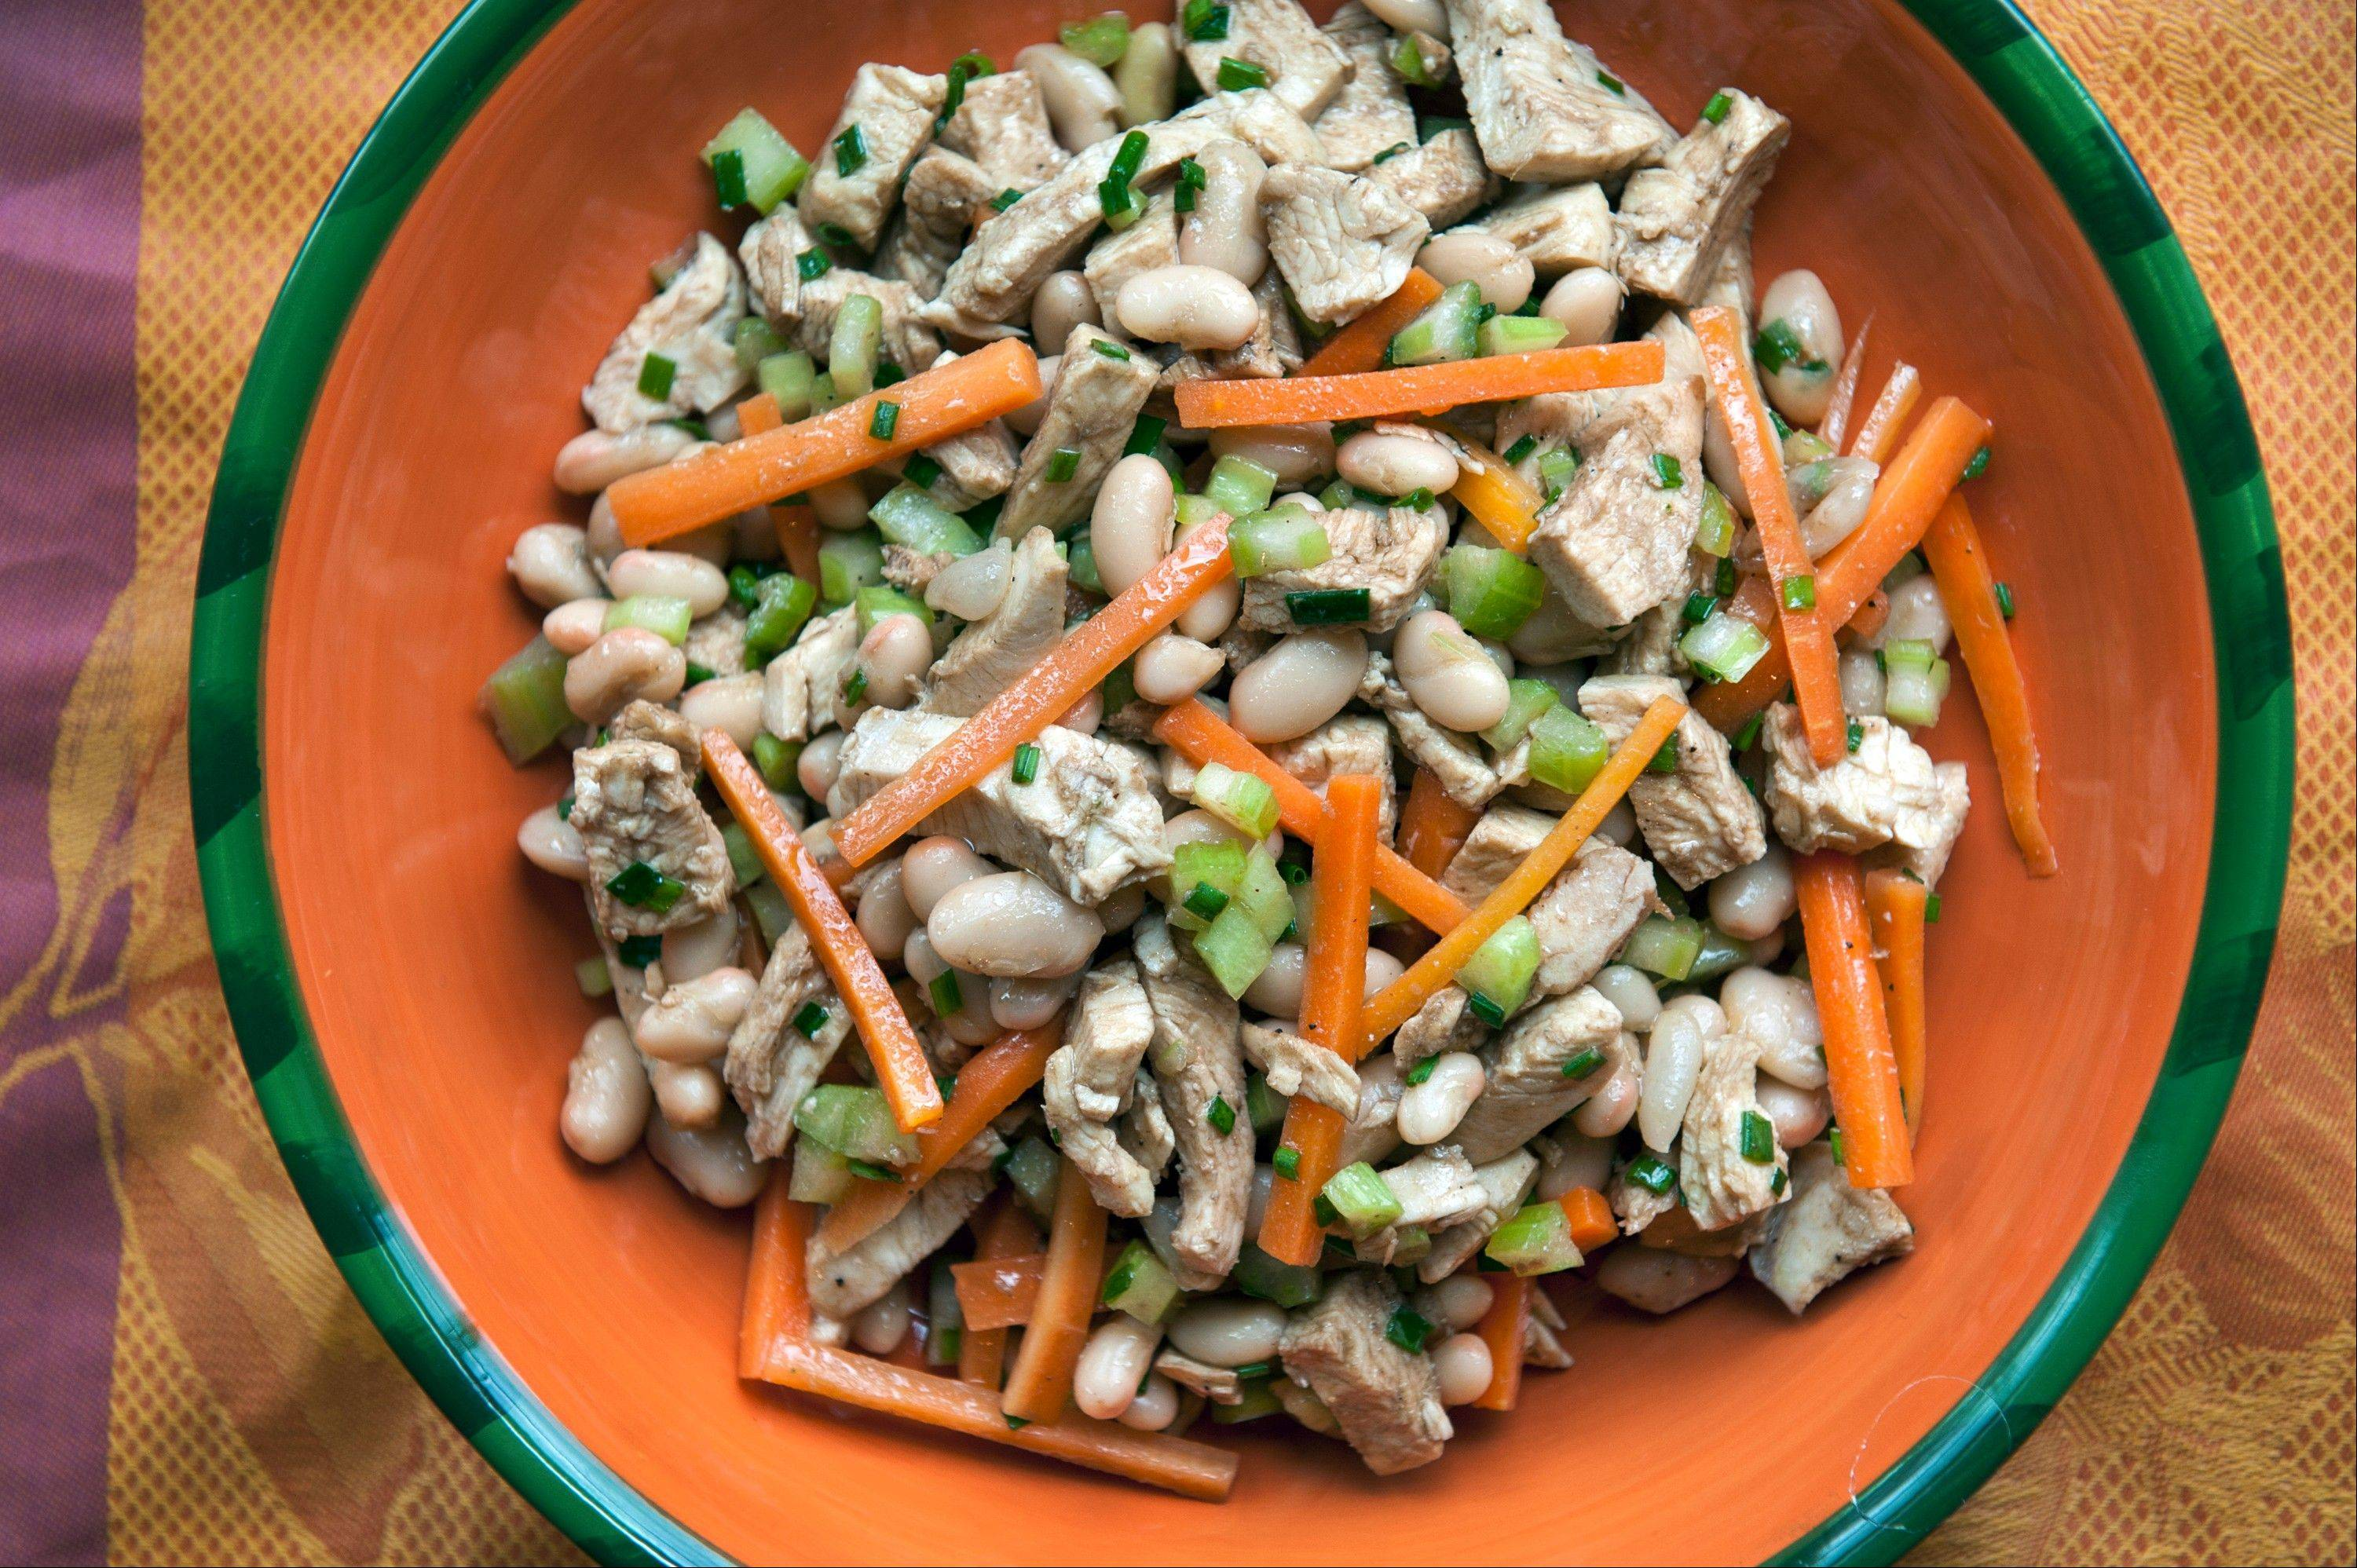 White beans and carrots work with chicken for a light, spring dinner.